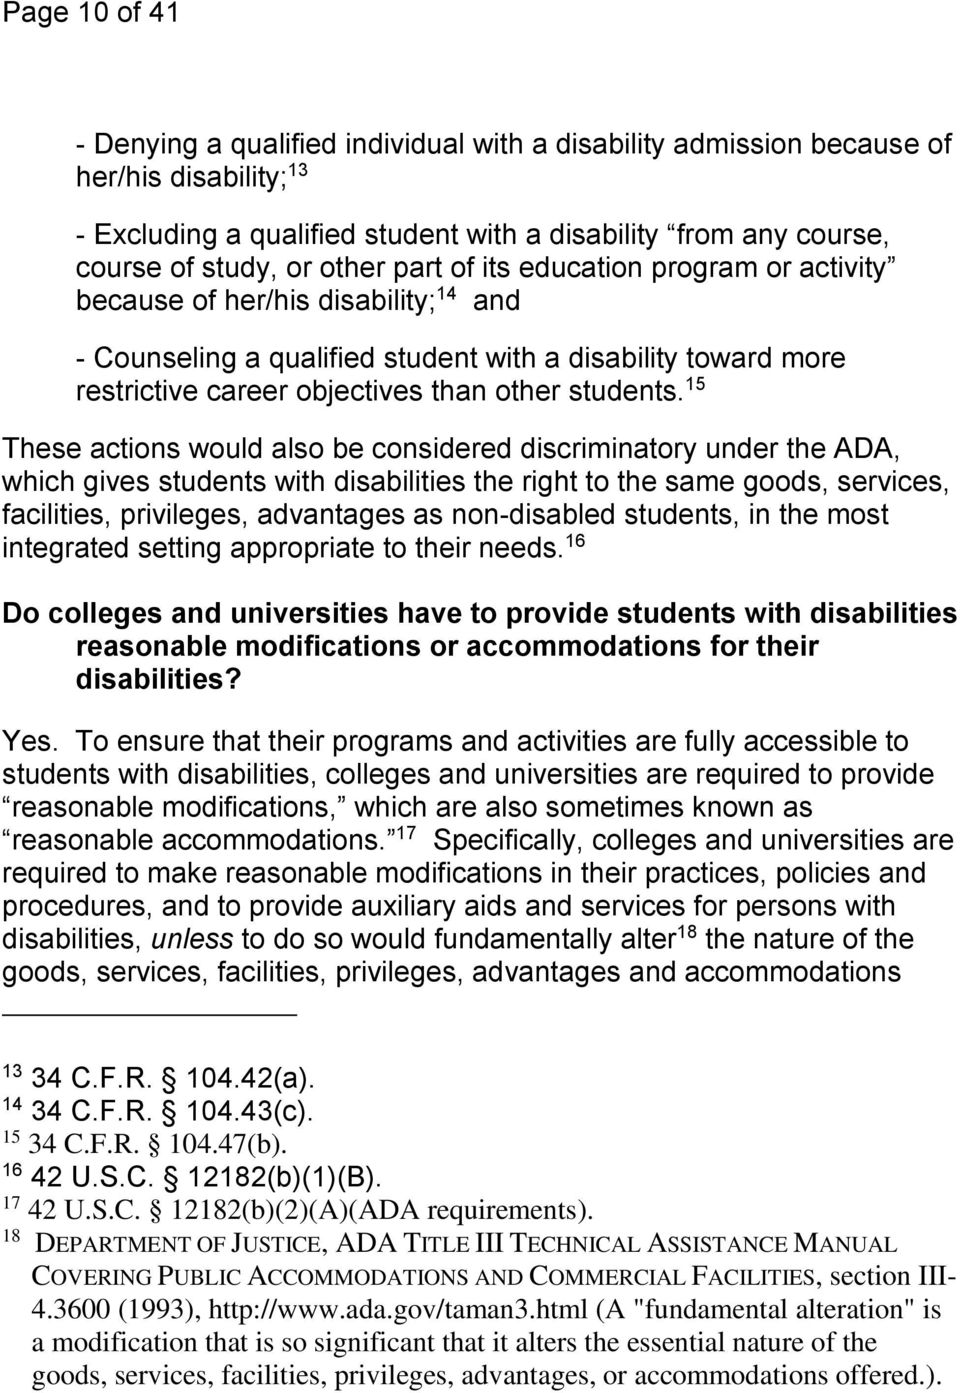 15 These actions would also be considered discriminatory under the ADA, which gives students with disabilities the right to the same goods, services, facilities, privileges, advantages as